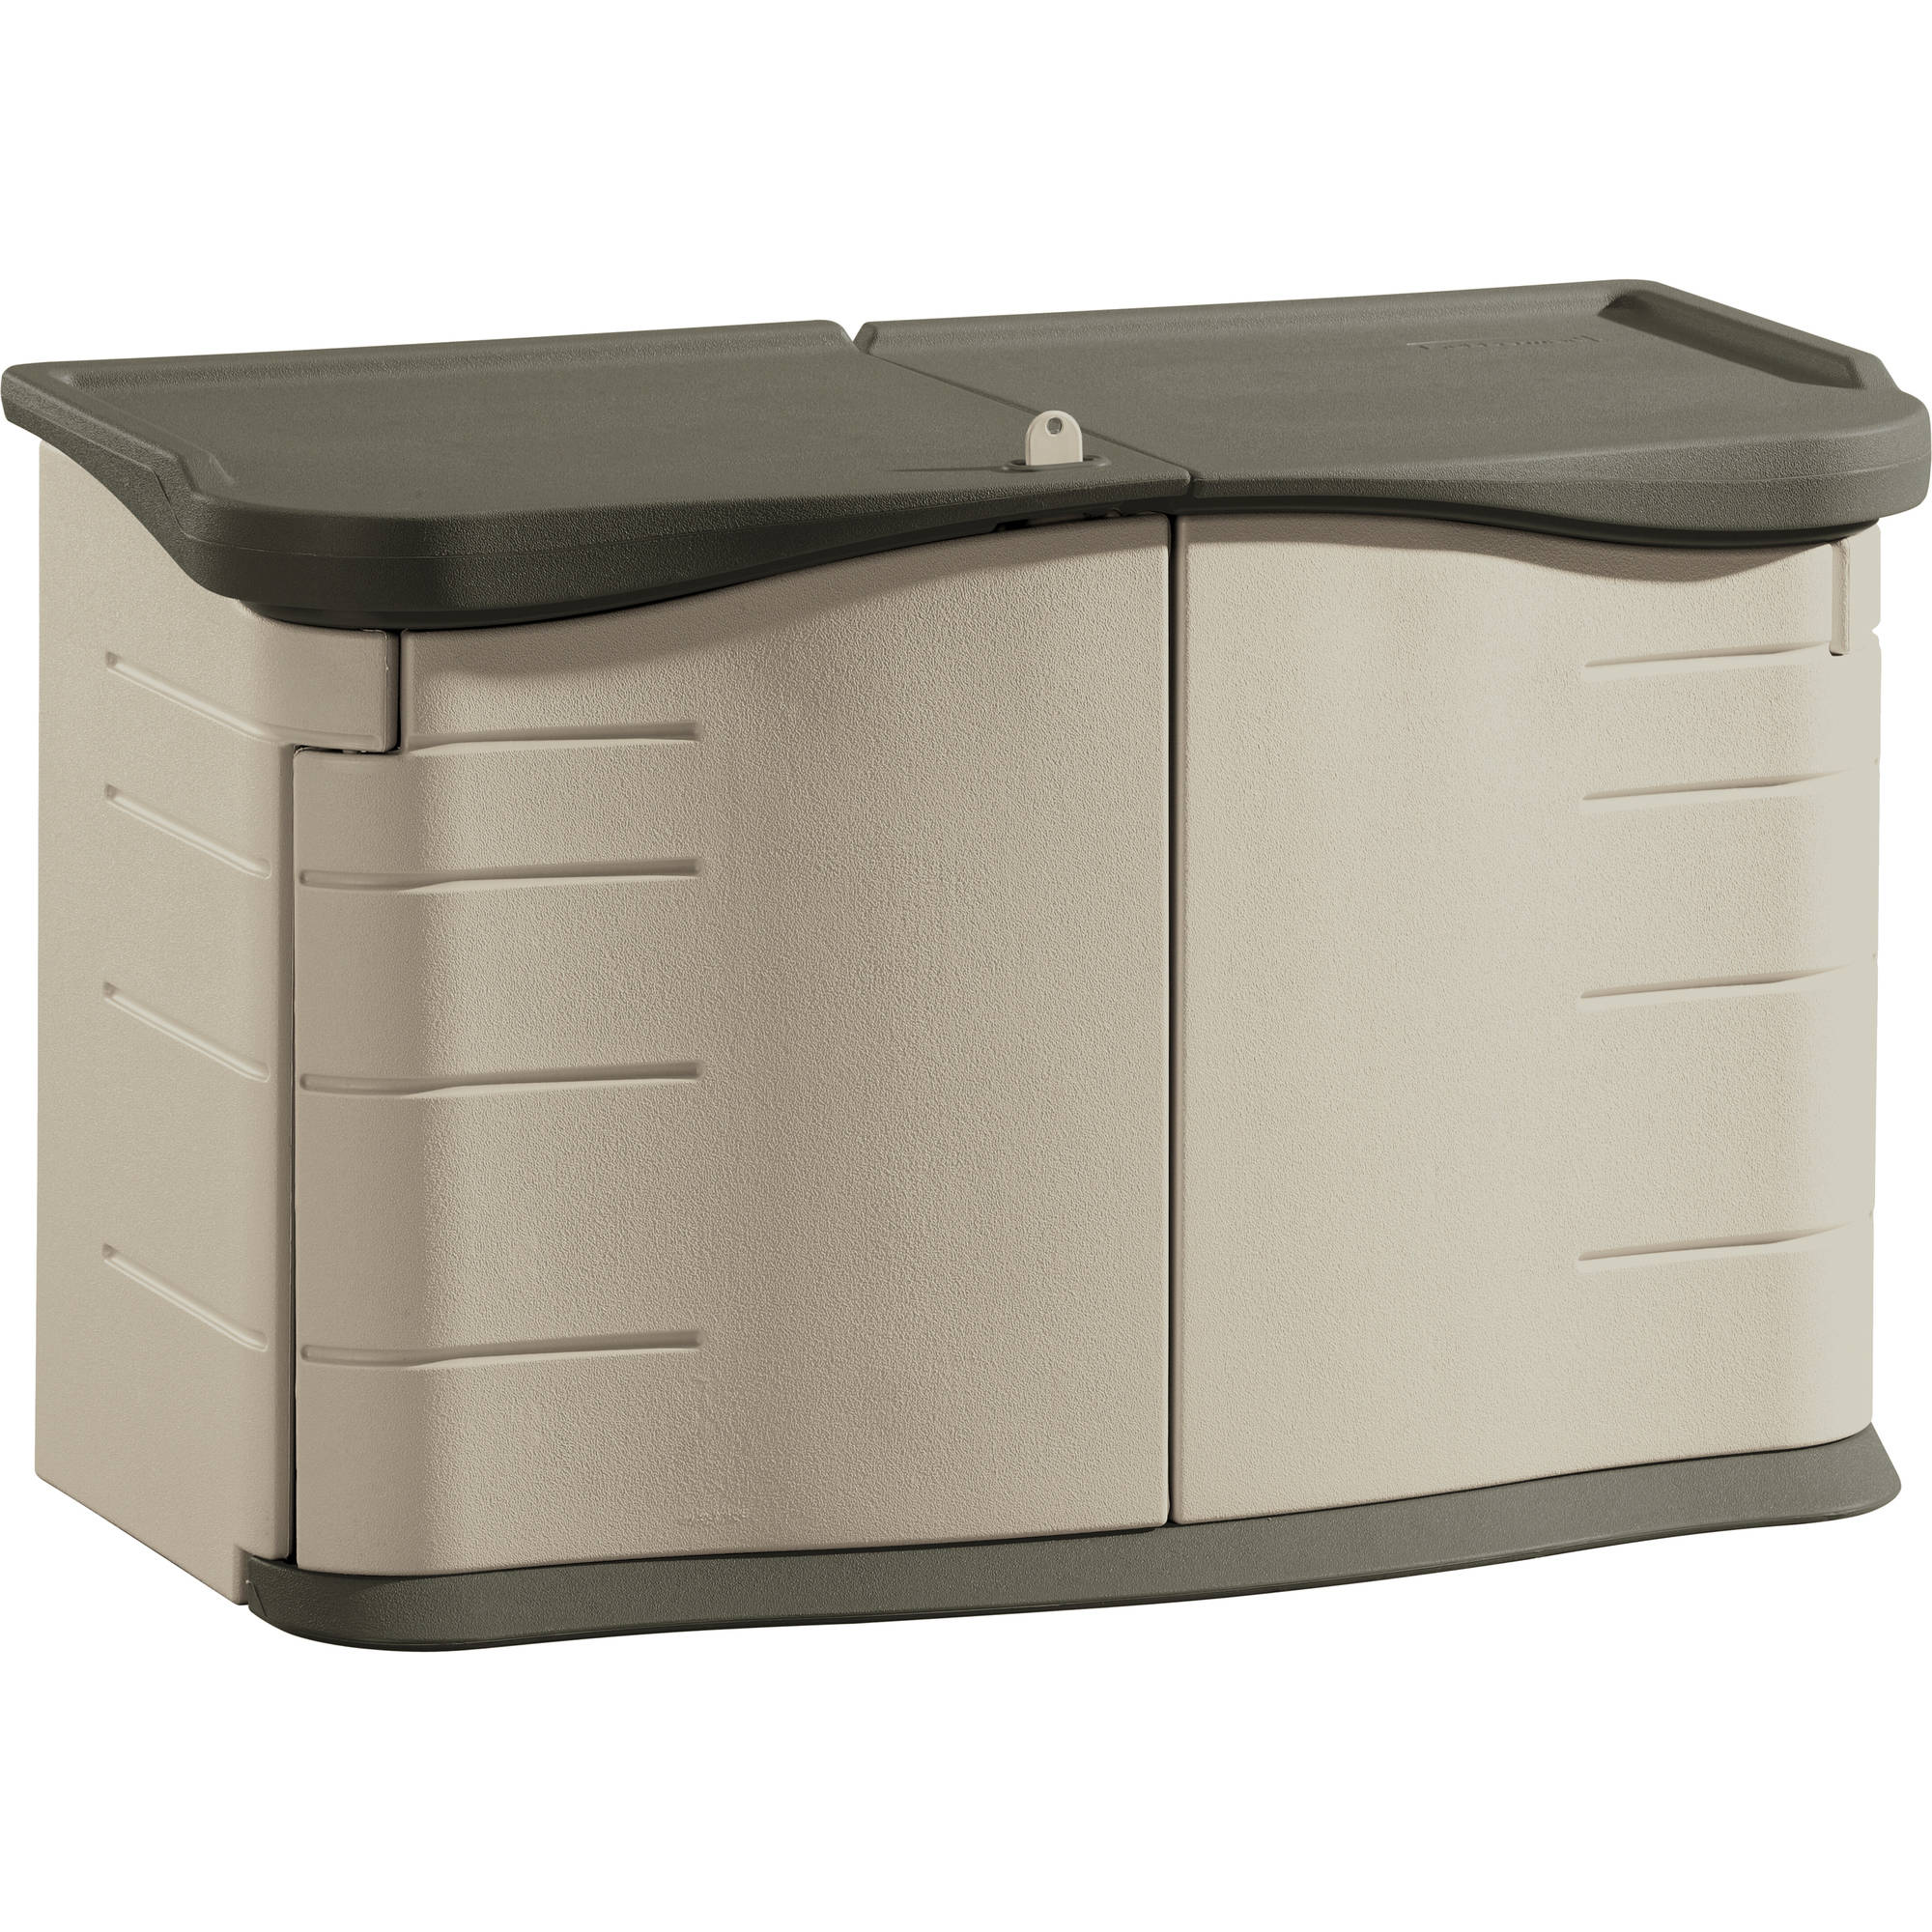 Rubbermaid Split Lid Deck Storage